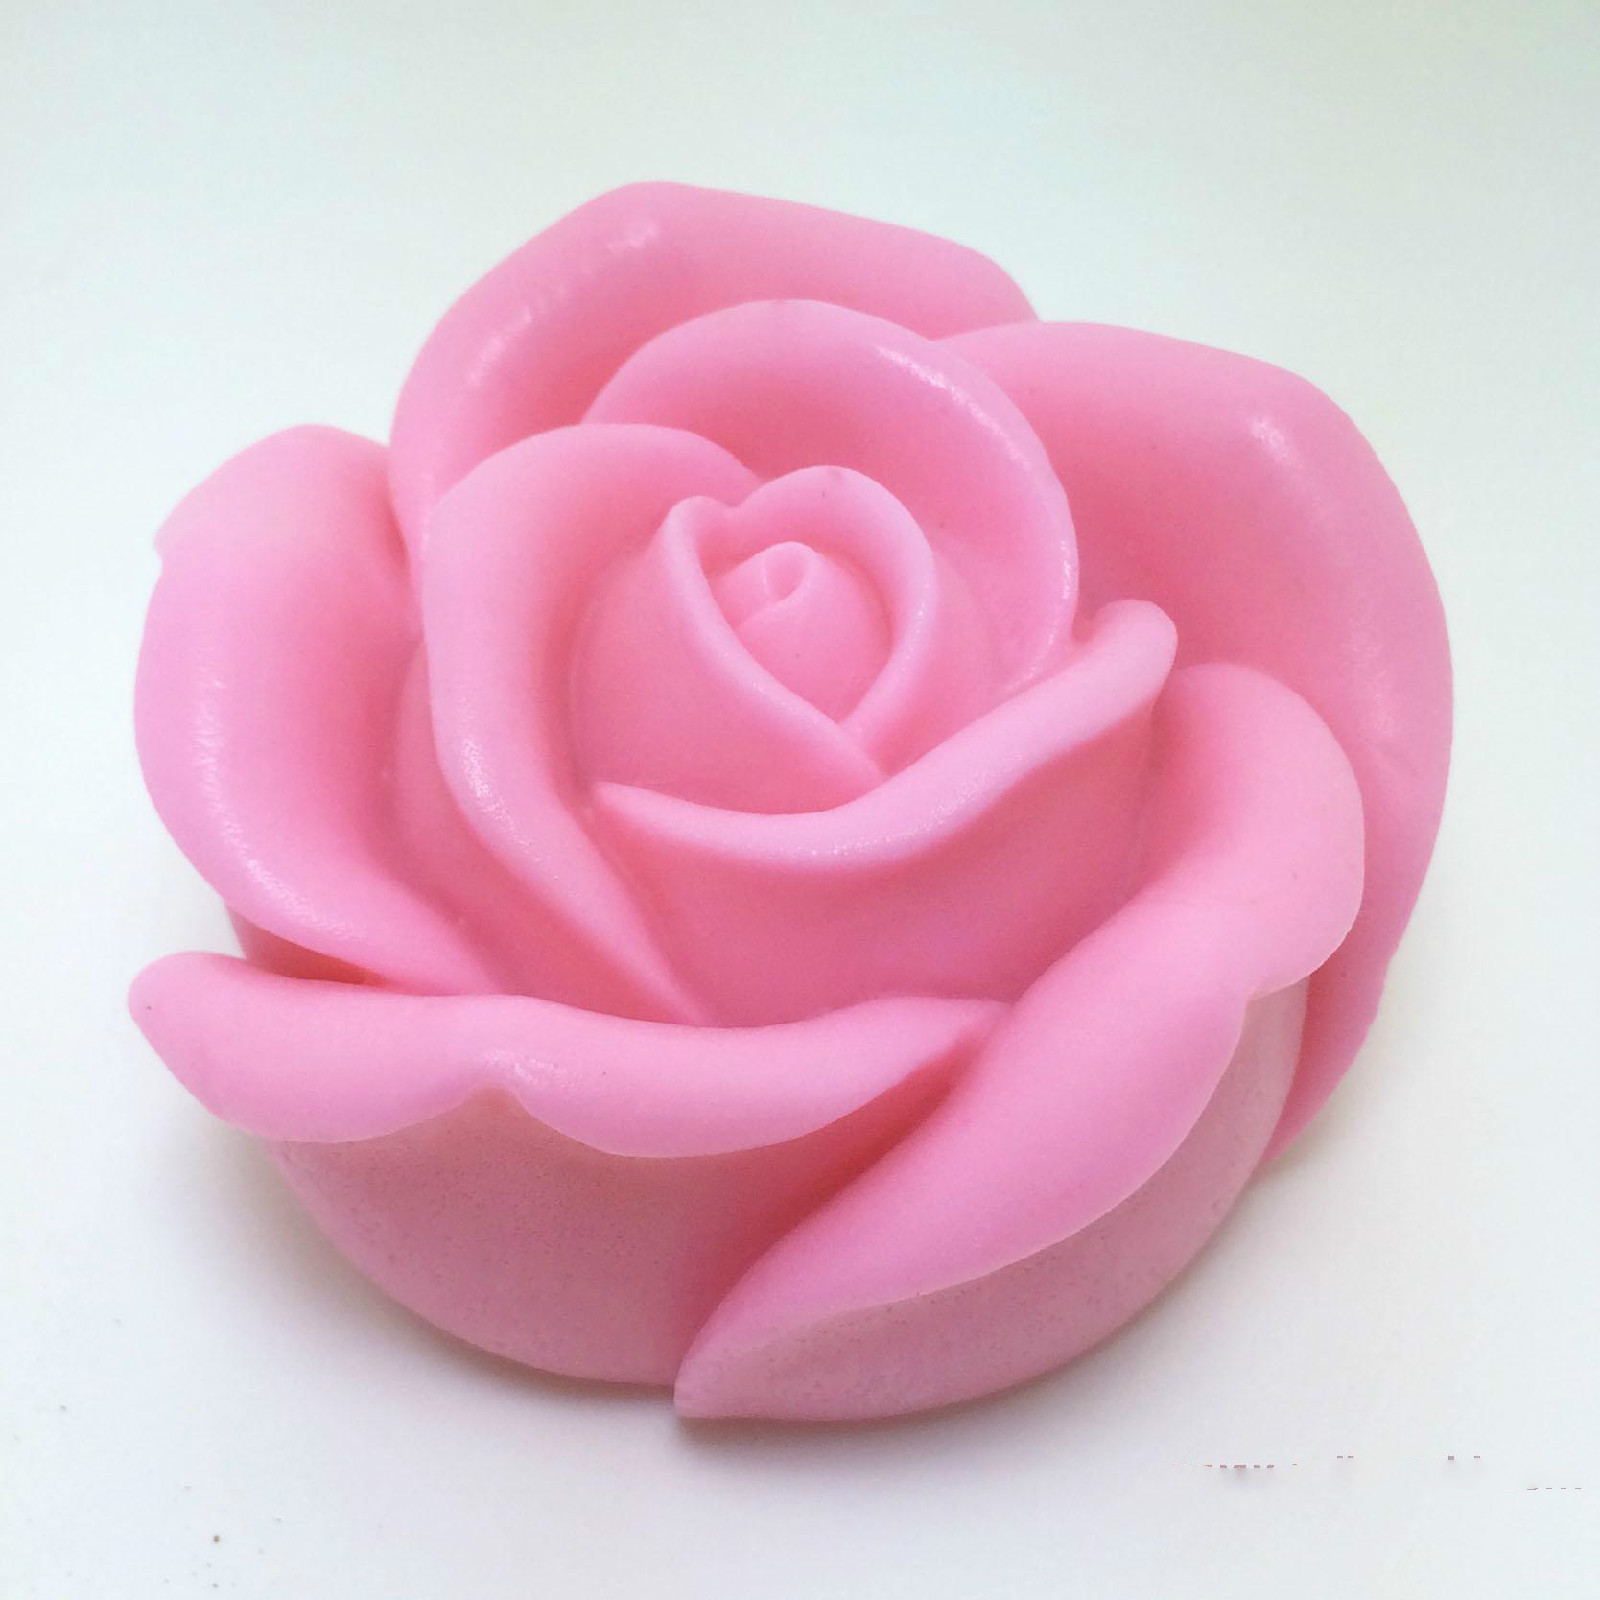 Decorative candles 3D rose flower soap silicone mold handmade Silicon molds for soap making in Soap Molds from Home Garden